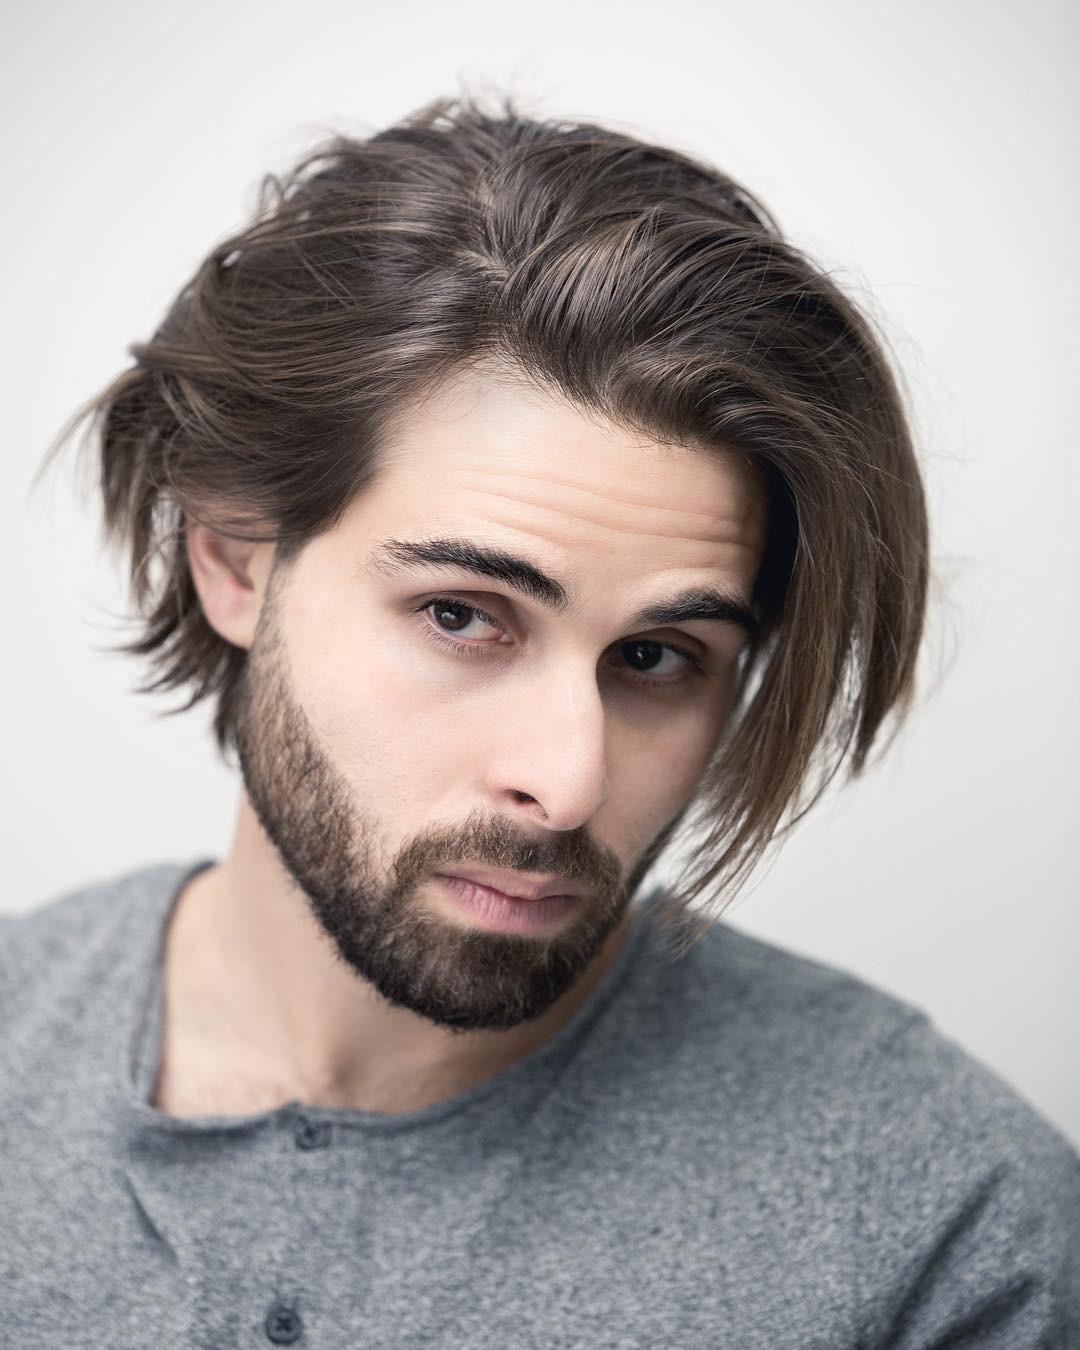 Best ideas about Mens Hairstyles For Long Hair . Save or Pin How To Grow Your Hair Out Men s Tutorial Now.